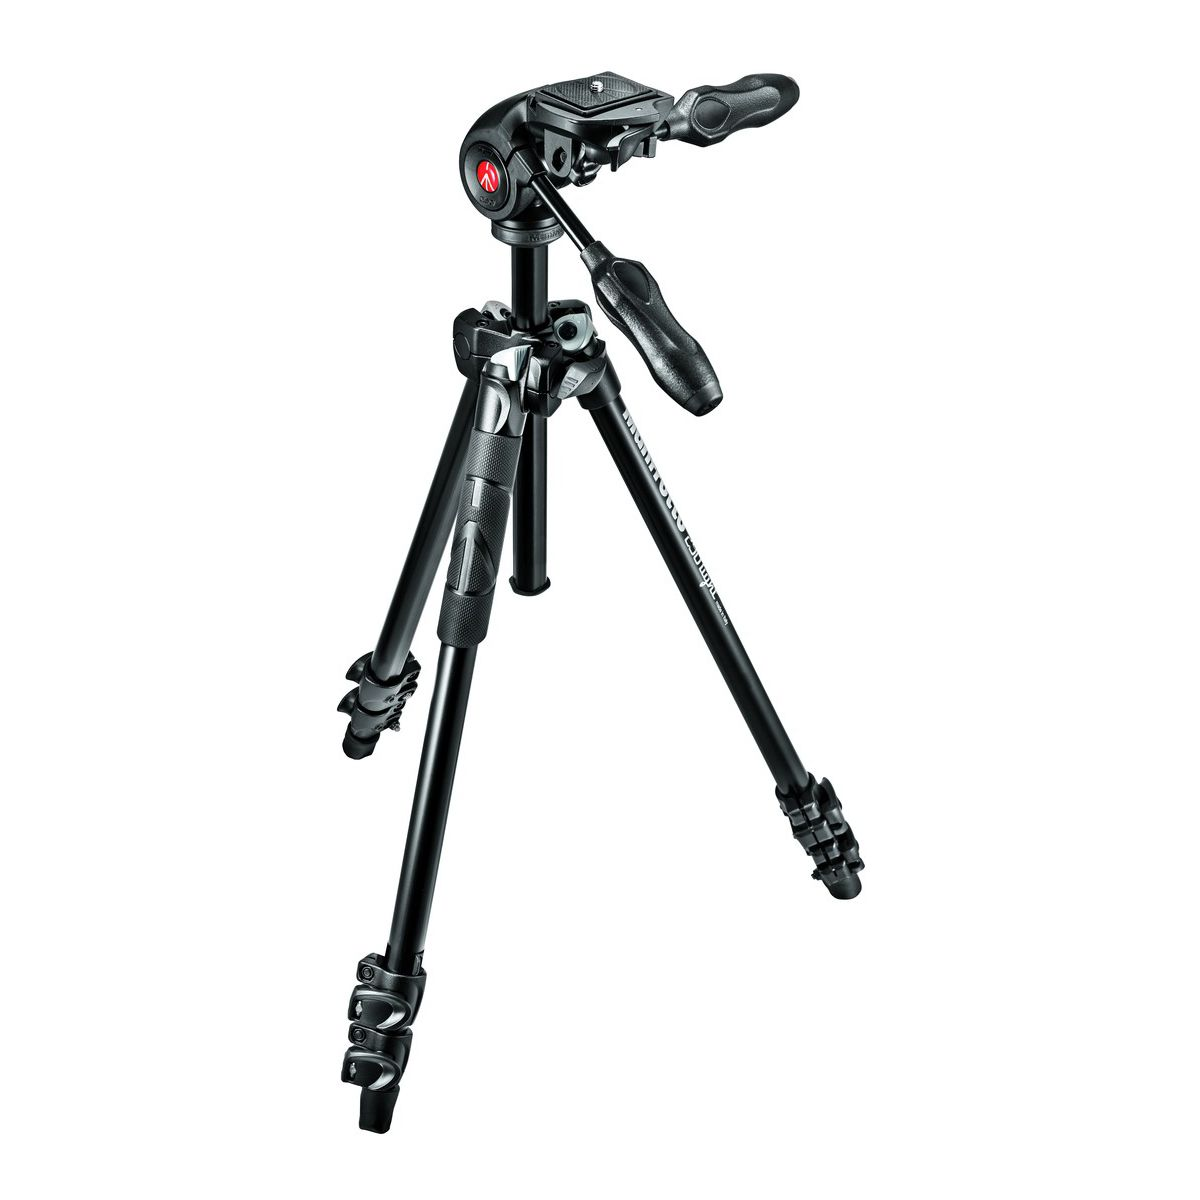 Tr�pied manfrotto 290 light + rotule 3d mh293d3-q2 - livraison offerte : code premium (photo)